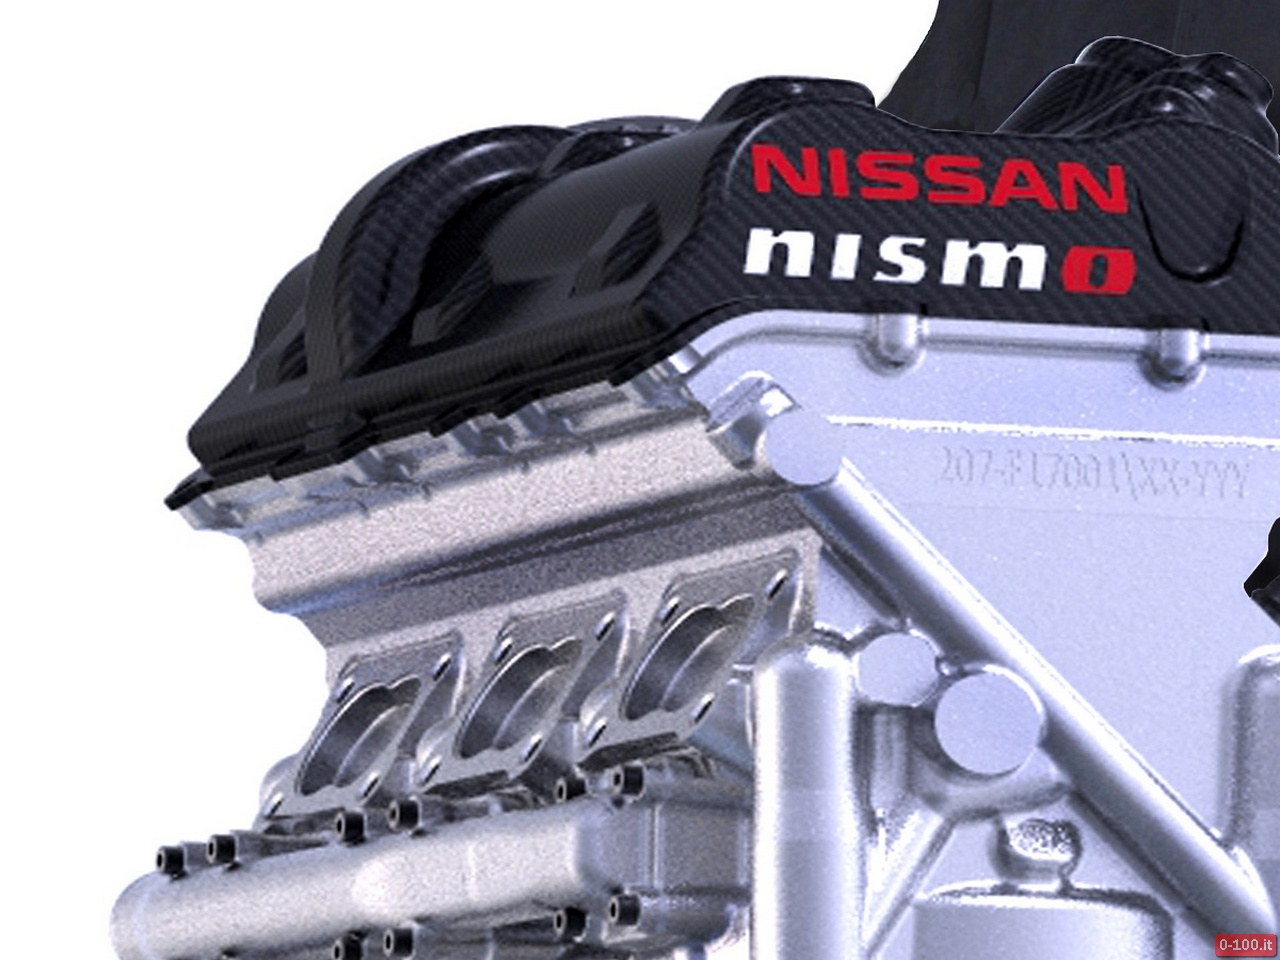 nissan-dig-t-r-1-5-3-cilindri-turbo-40-kg-400-hp-zeod-rc-le-mans-0-100_7